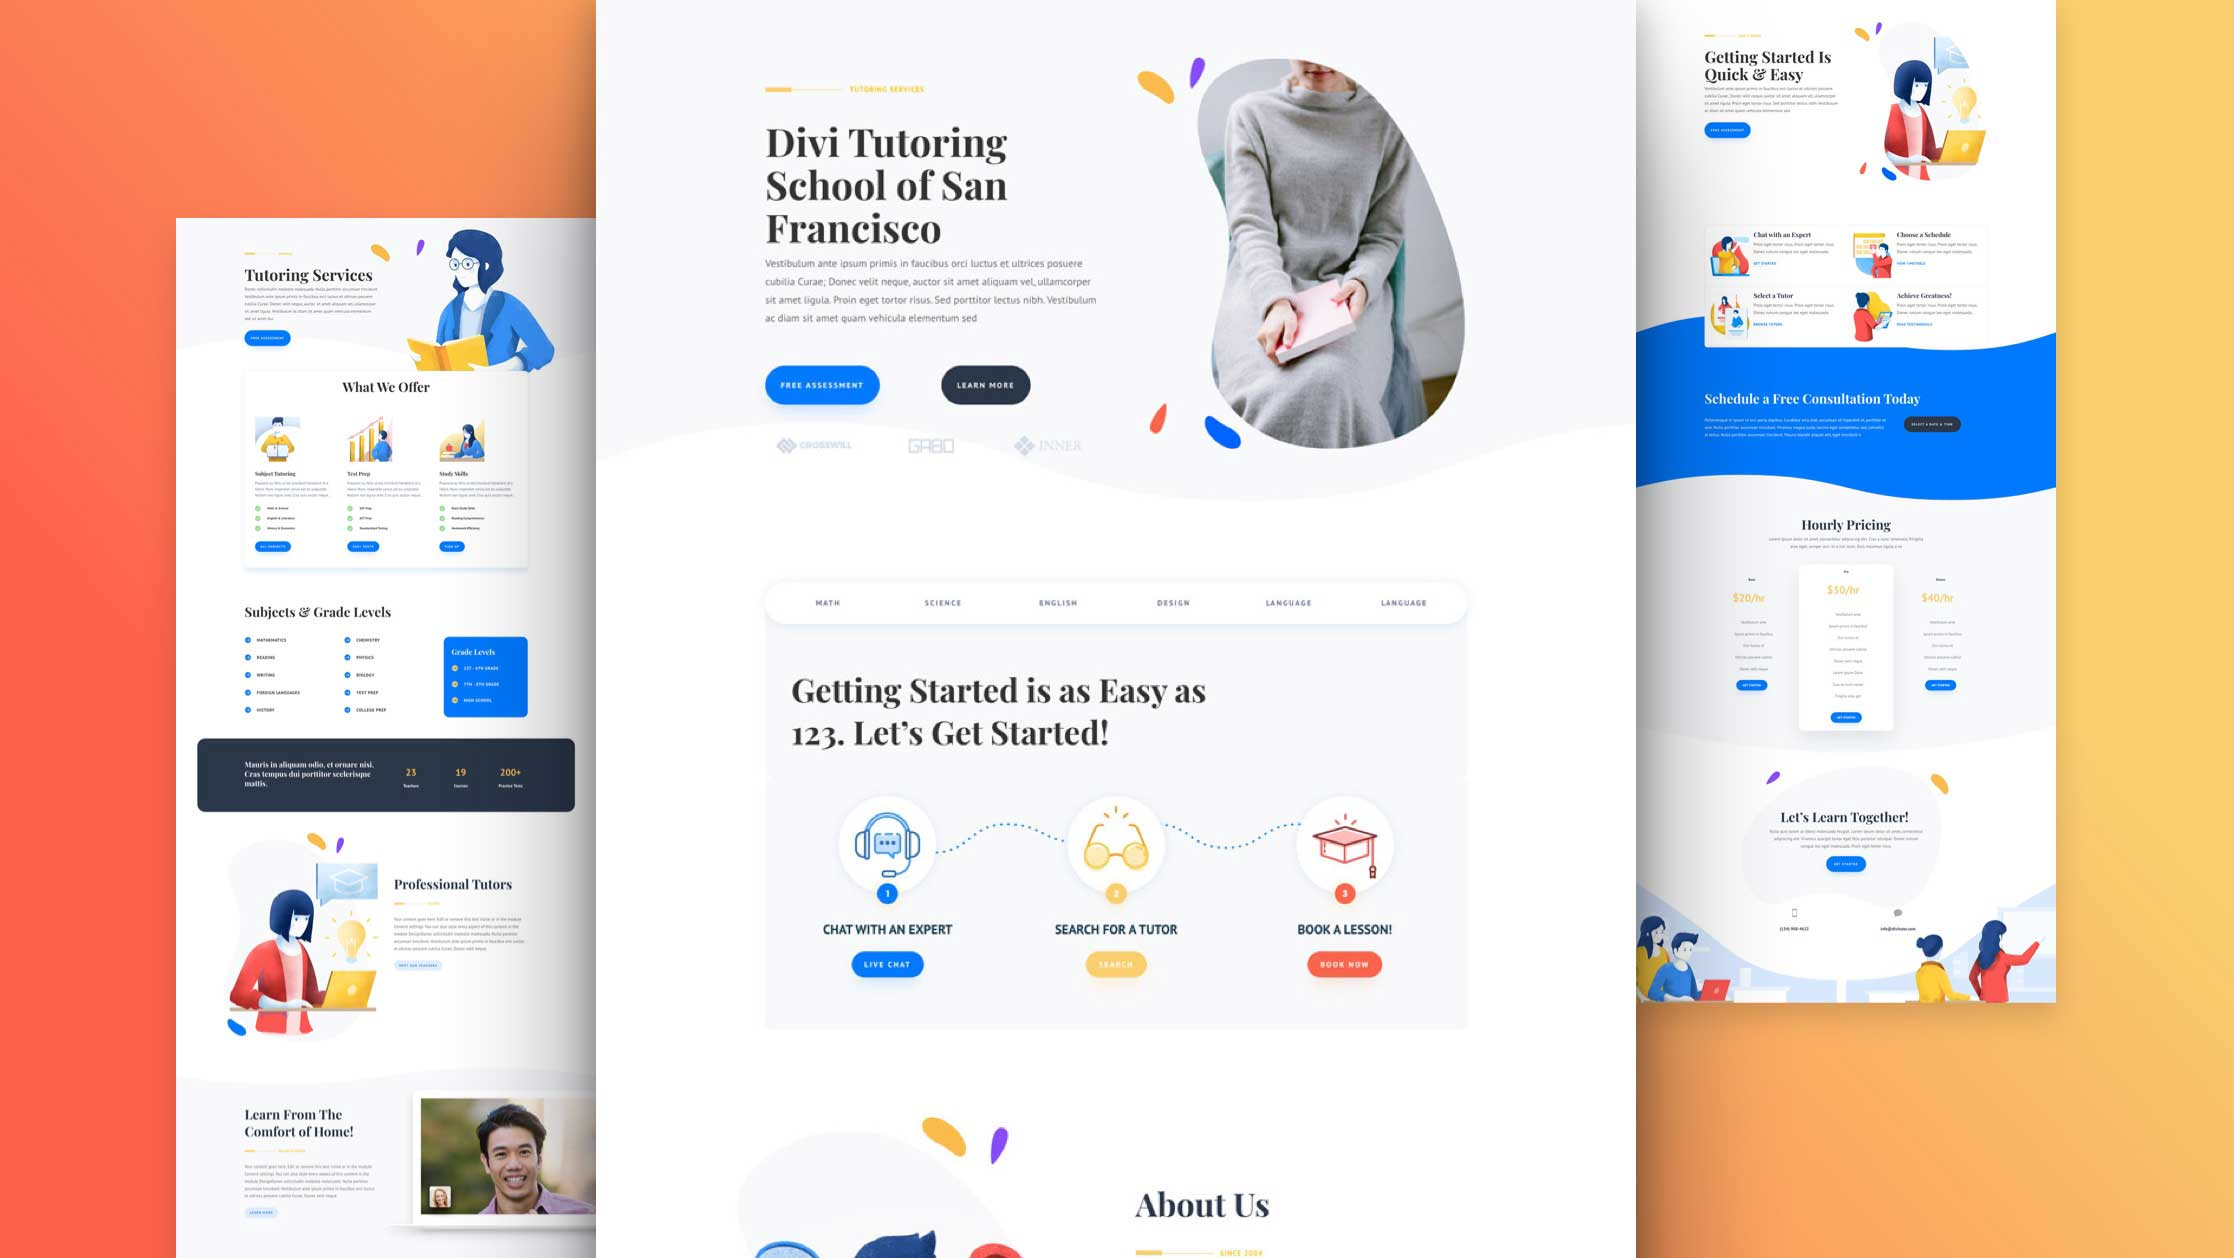 Get a FREE Tutor Layout Pack for Divi